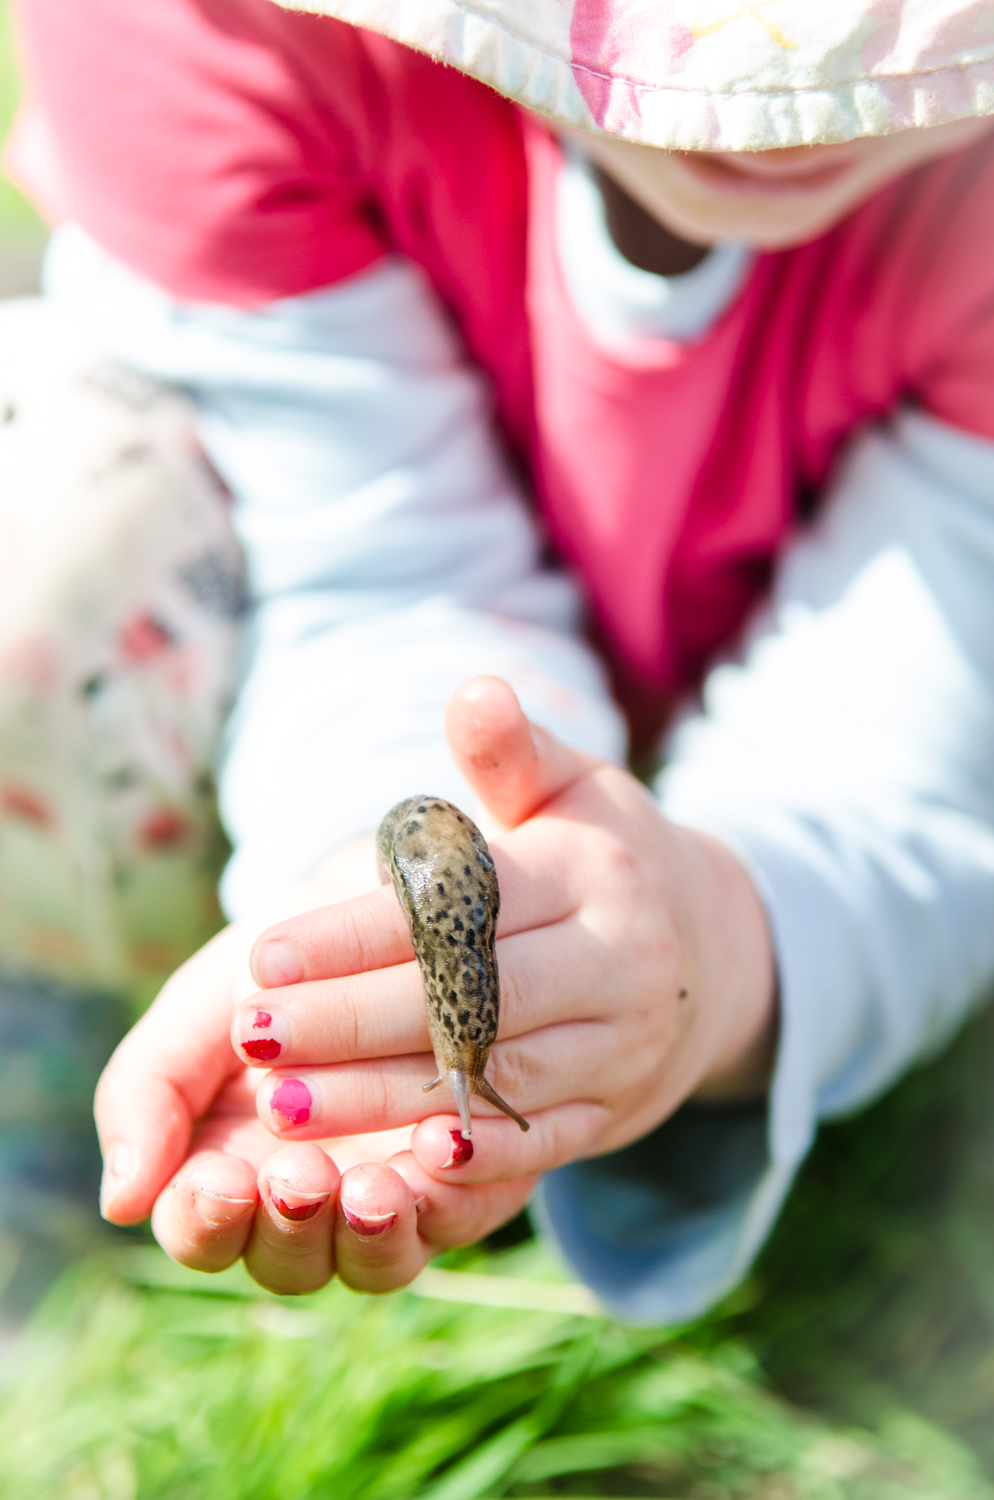 Demystifying the fear of 'nature' often means immersing yourself in it, interacting with it, and with a little persuasion, respecting it - no matter how slimy it is!